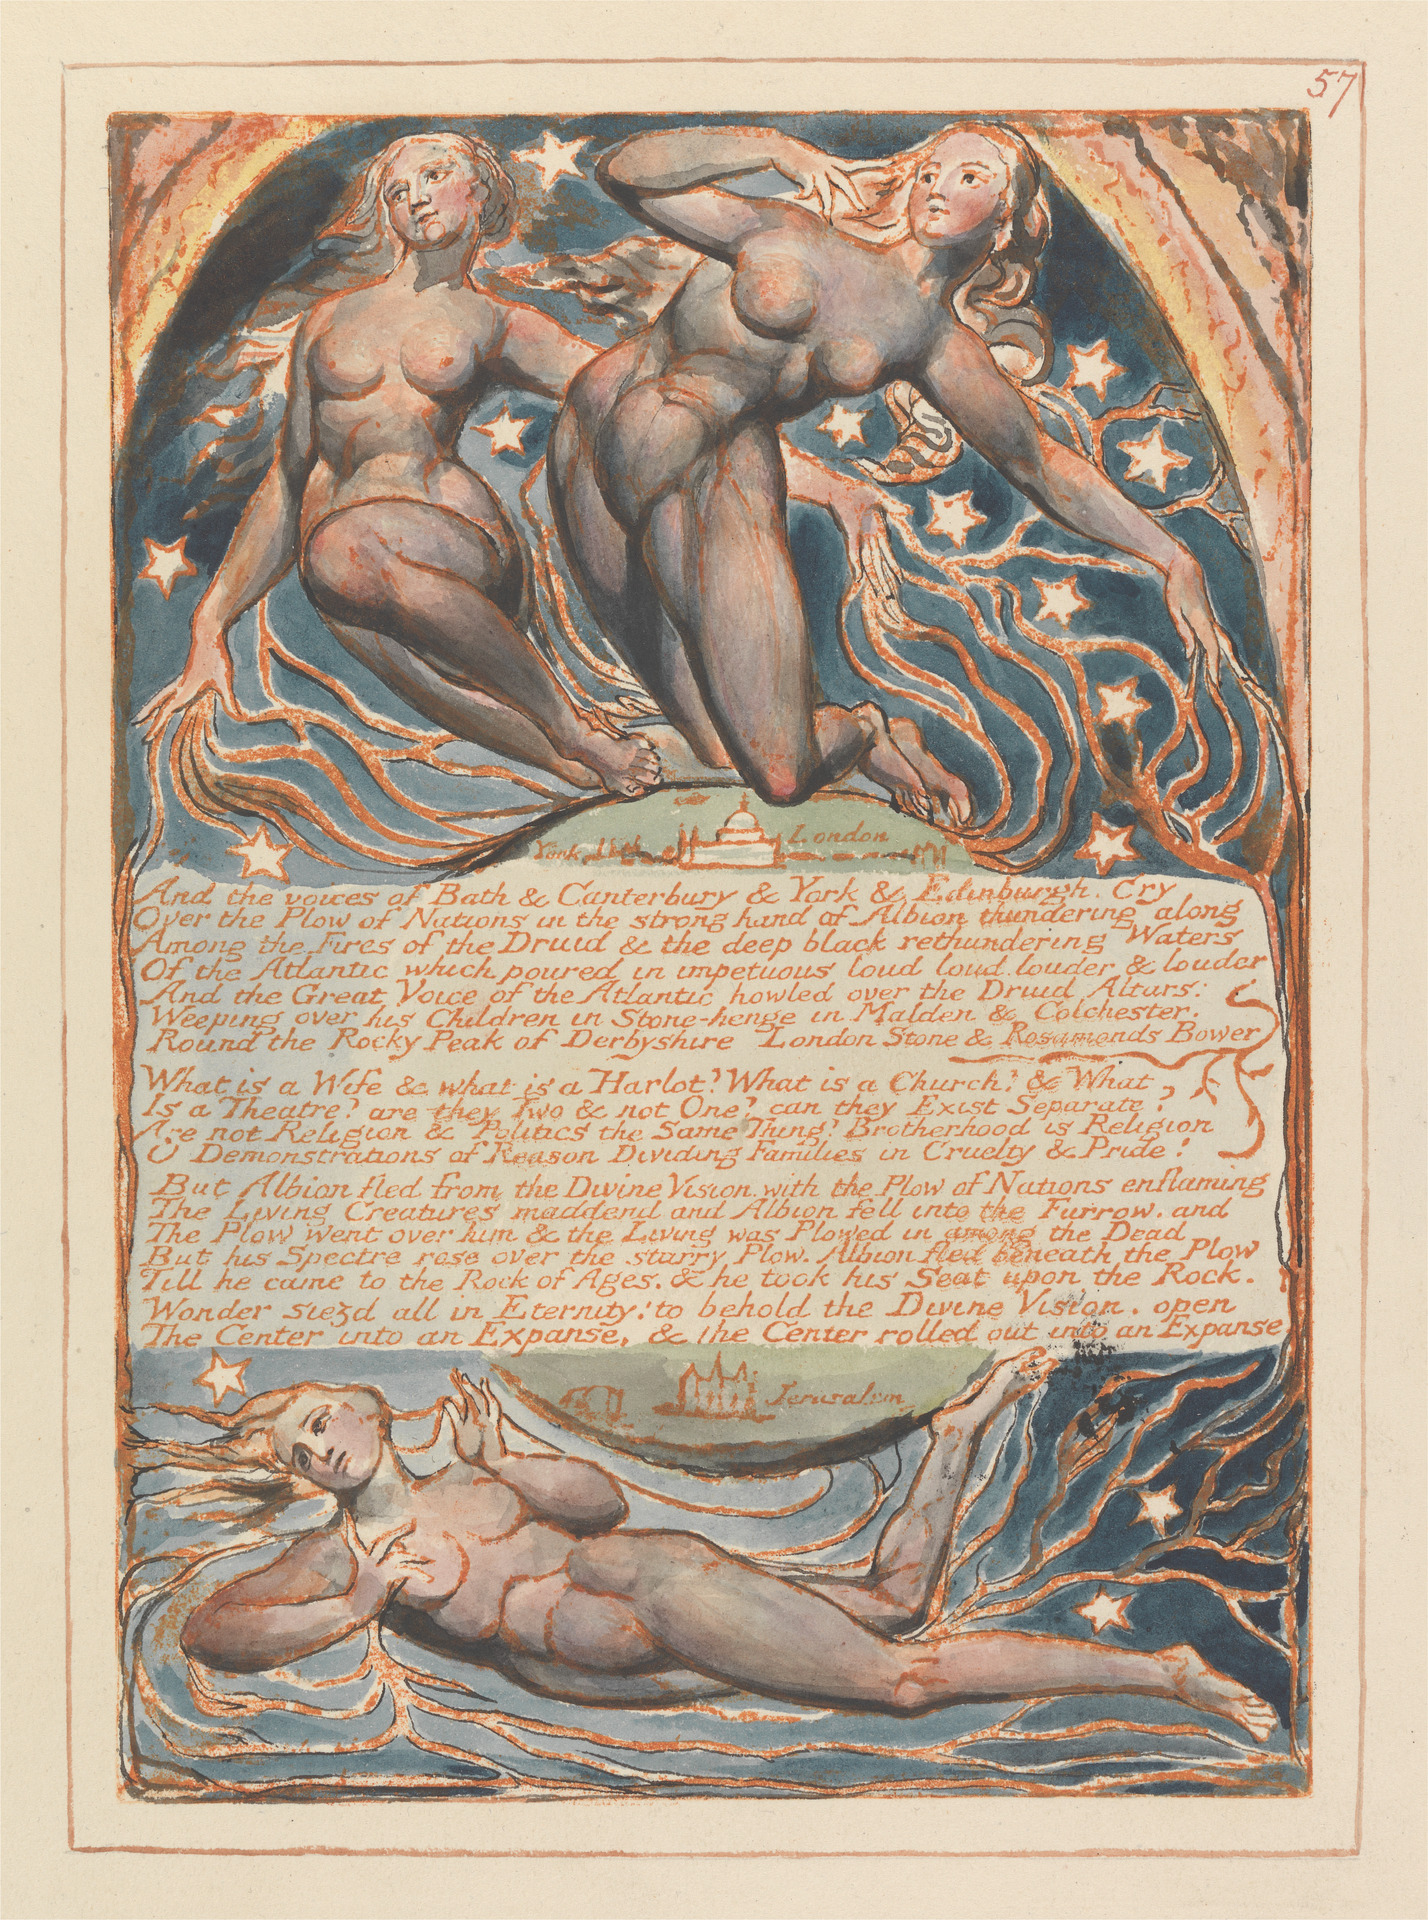 Plate 57. Relief etching print from Jerusalem, William Blake. (Published with permission from the Yale Center for British Art, Paul Mellon Collection)